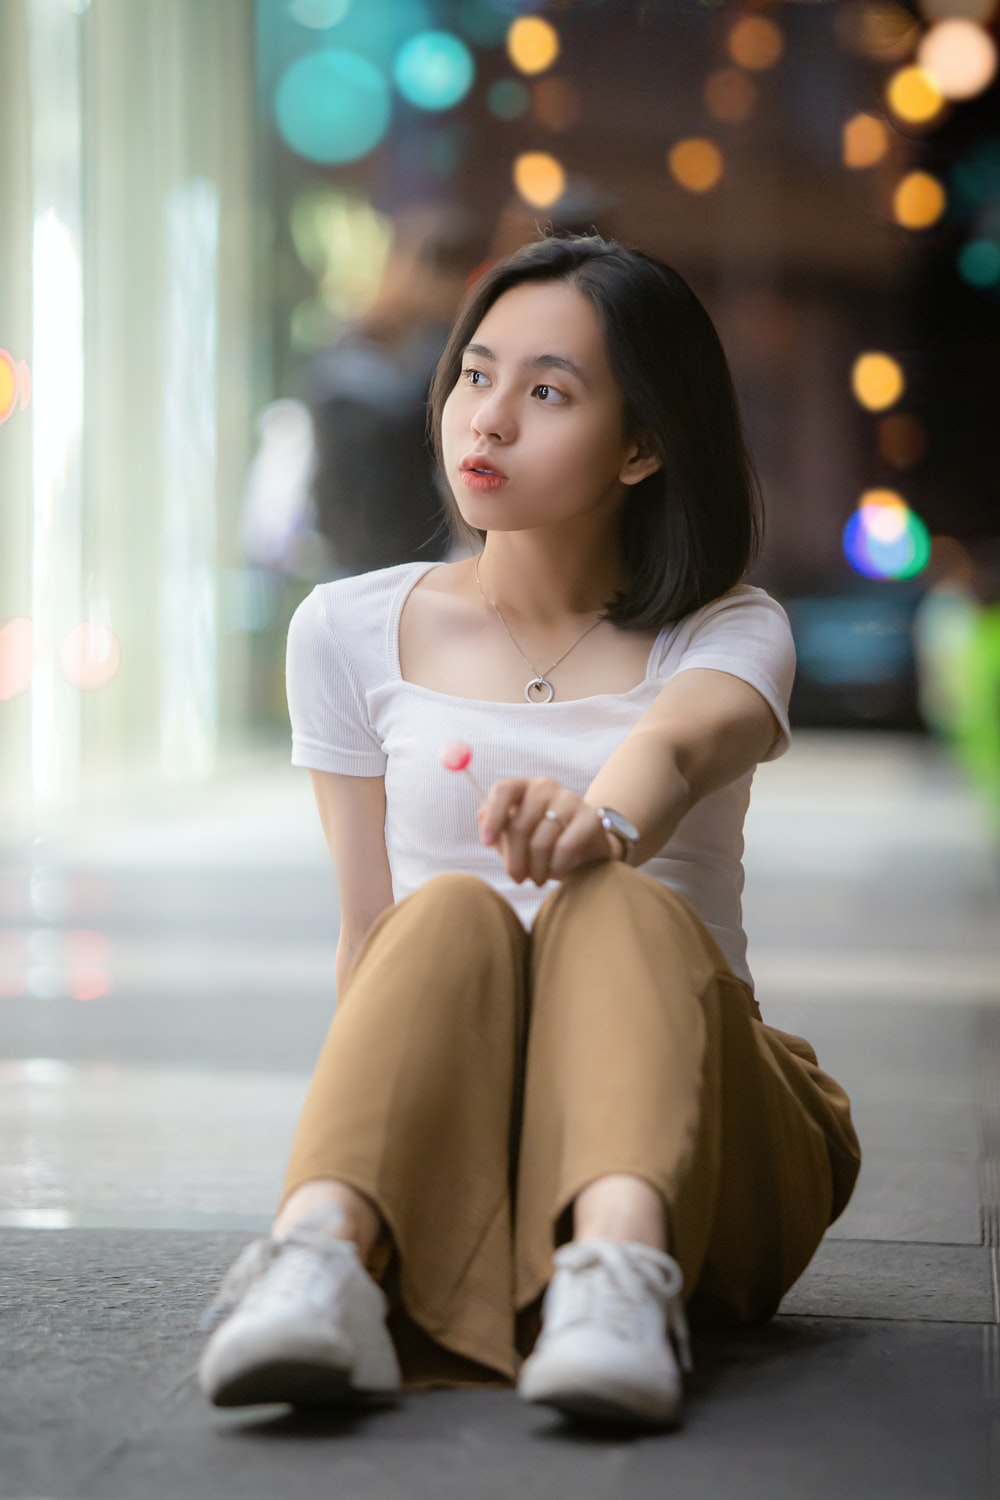 woman in white crew neck t-shirt and brown skirt sitting on floor